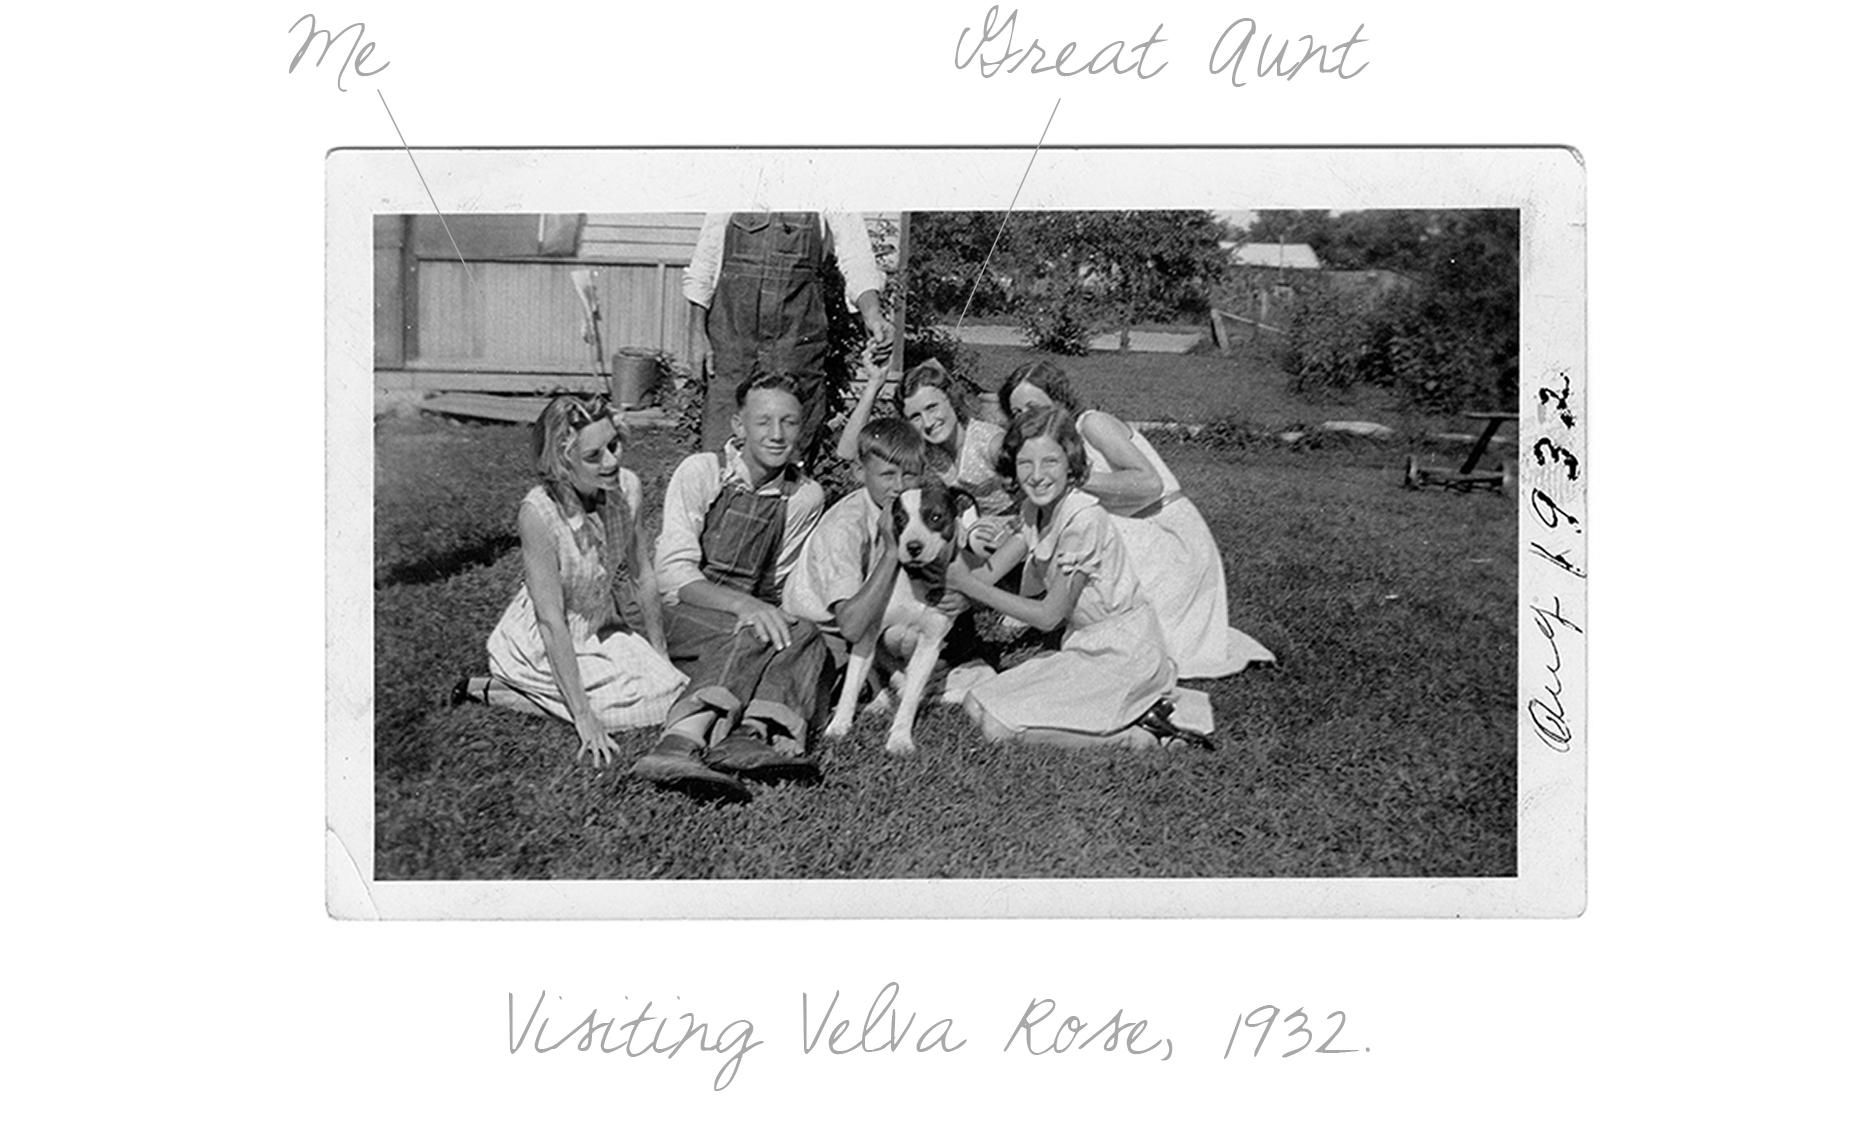 Visiting Velva Rose 1932 TXT